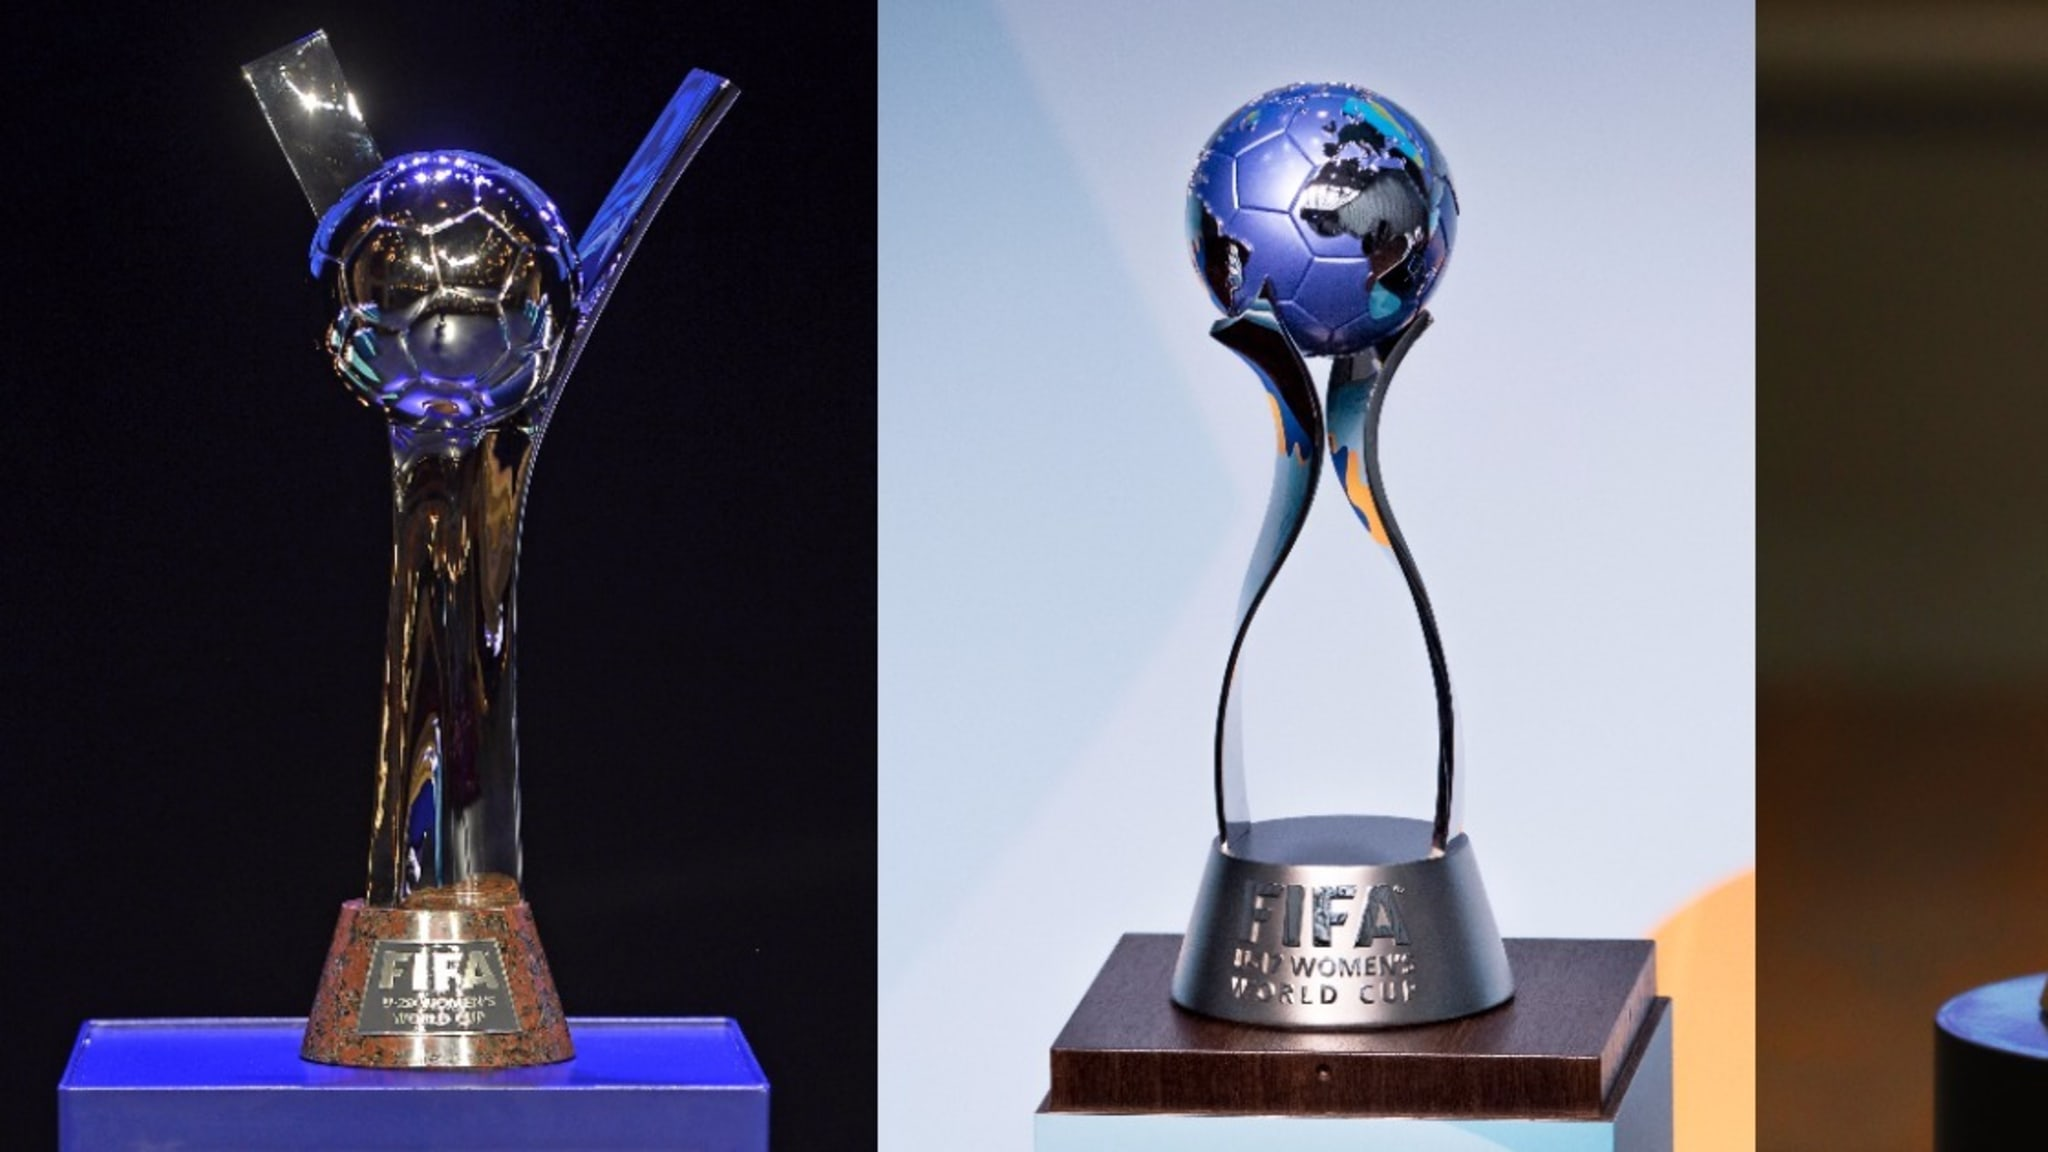 The FIFA U-17 Women's World Cup, FIFA U-20 Women's World Cup and FIFA Futsal World Cup trophies.